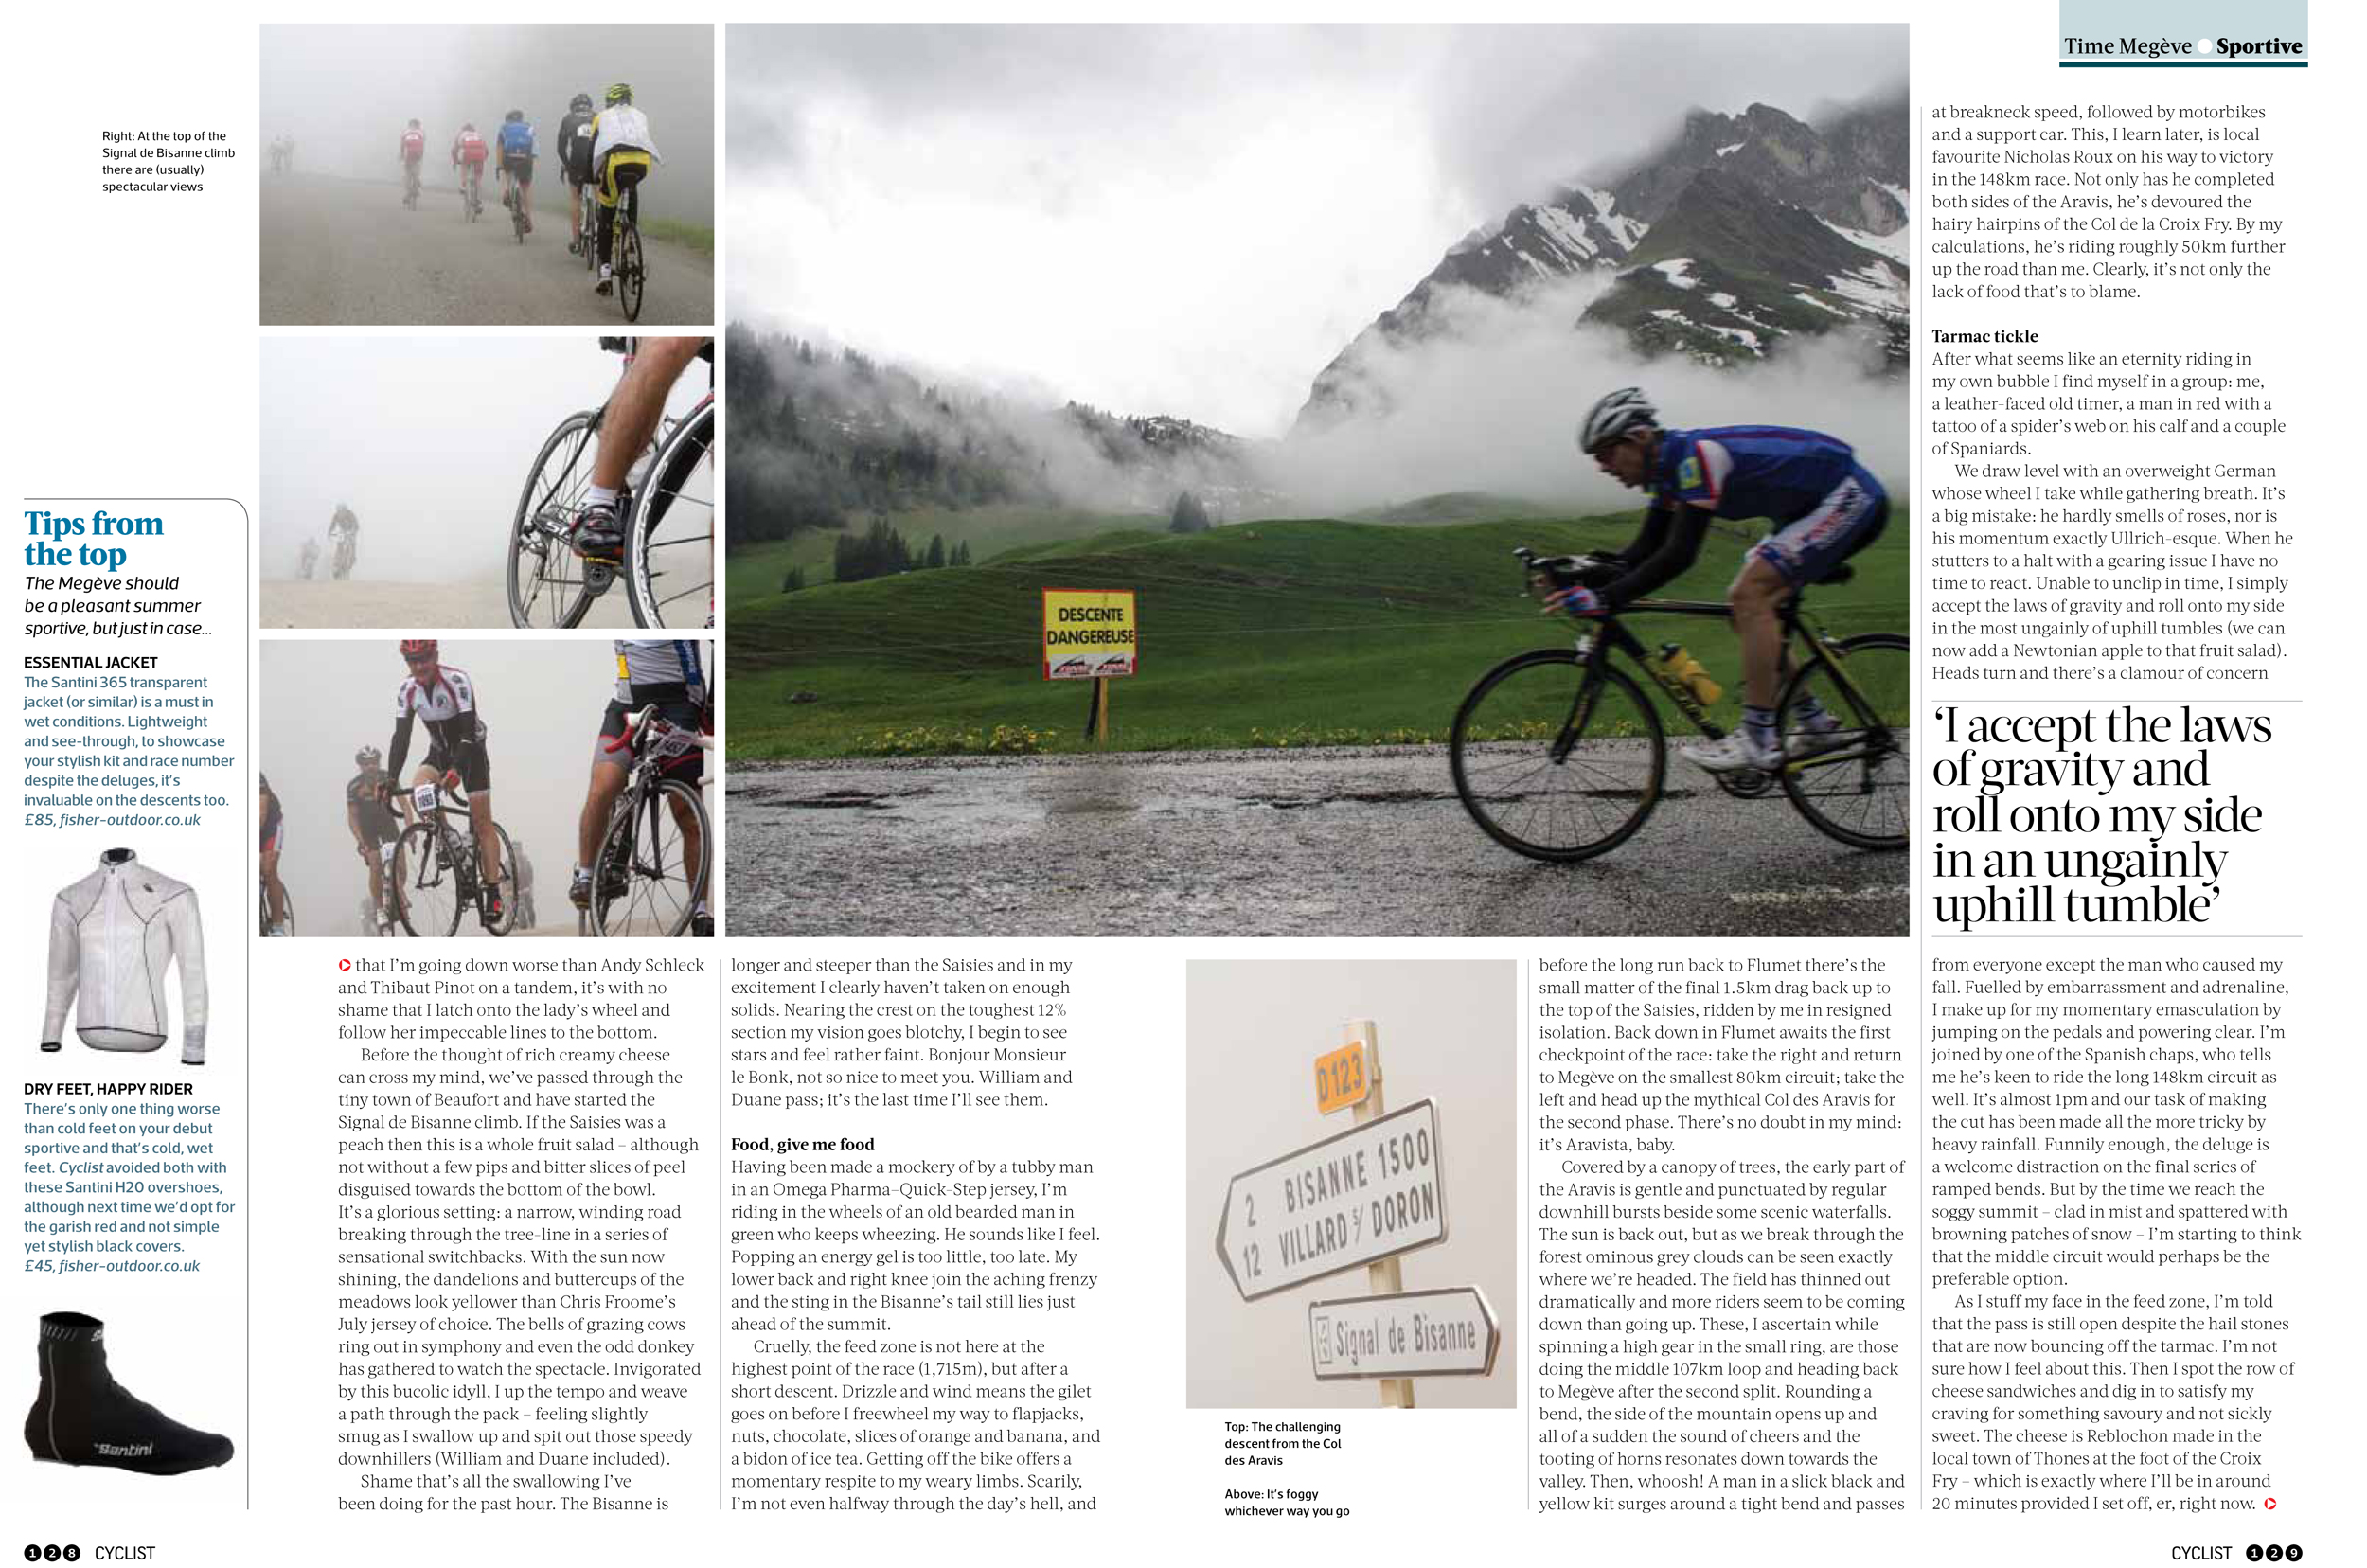 Baptism of Fire article IV, cyclist magazine